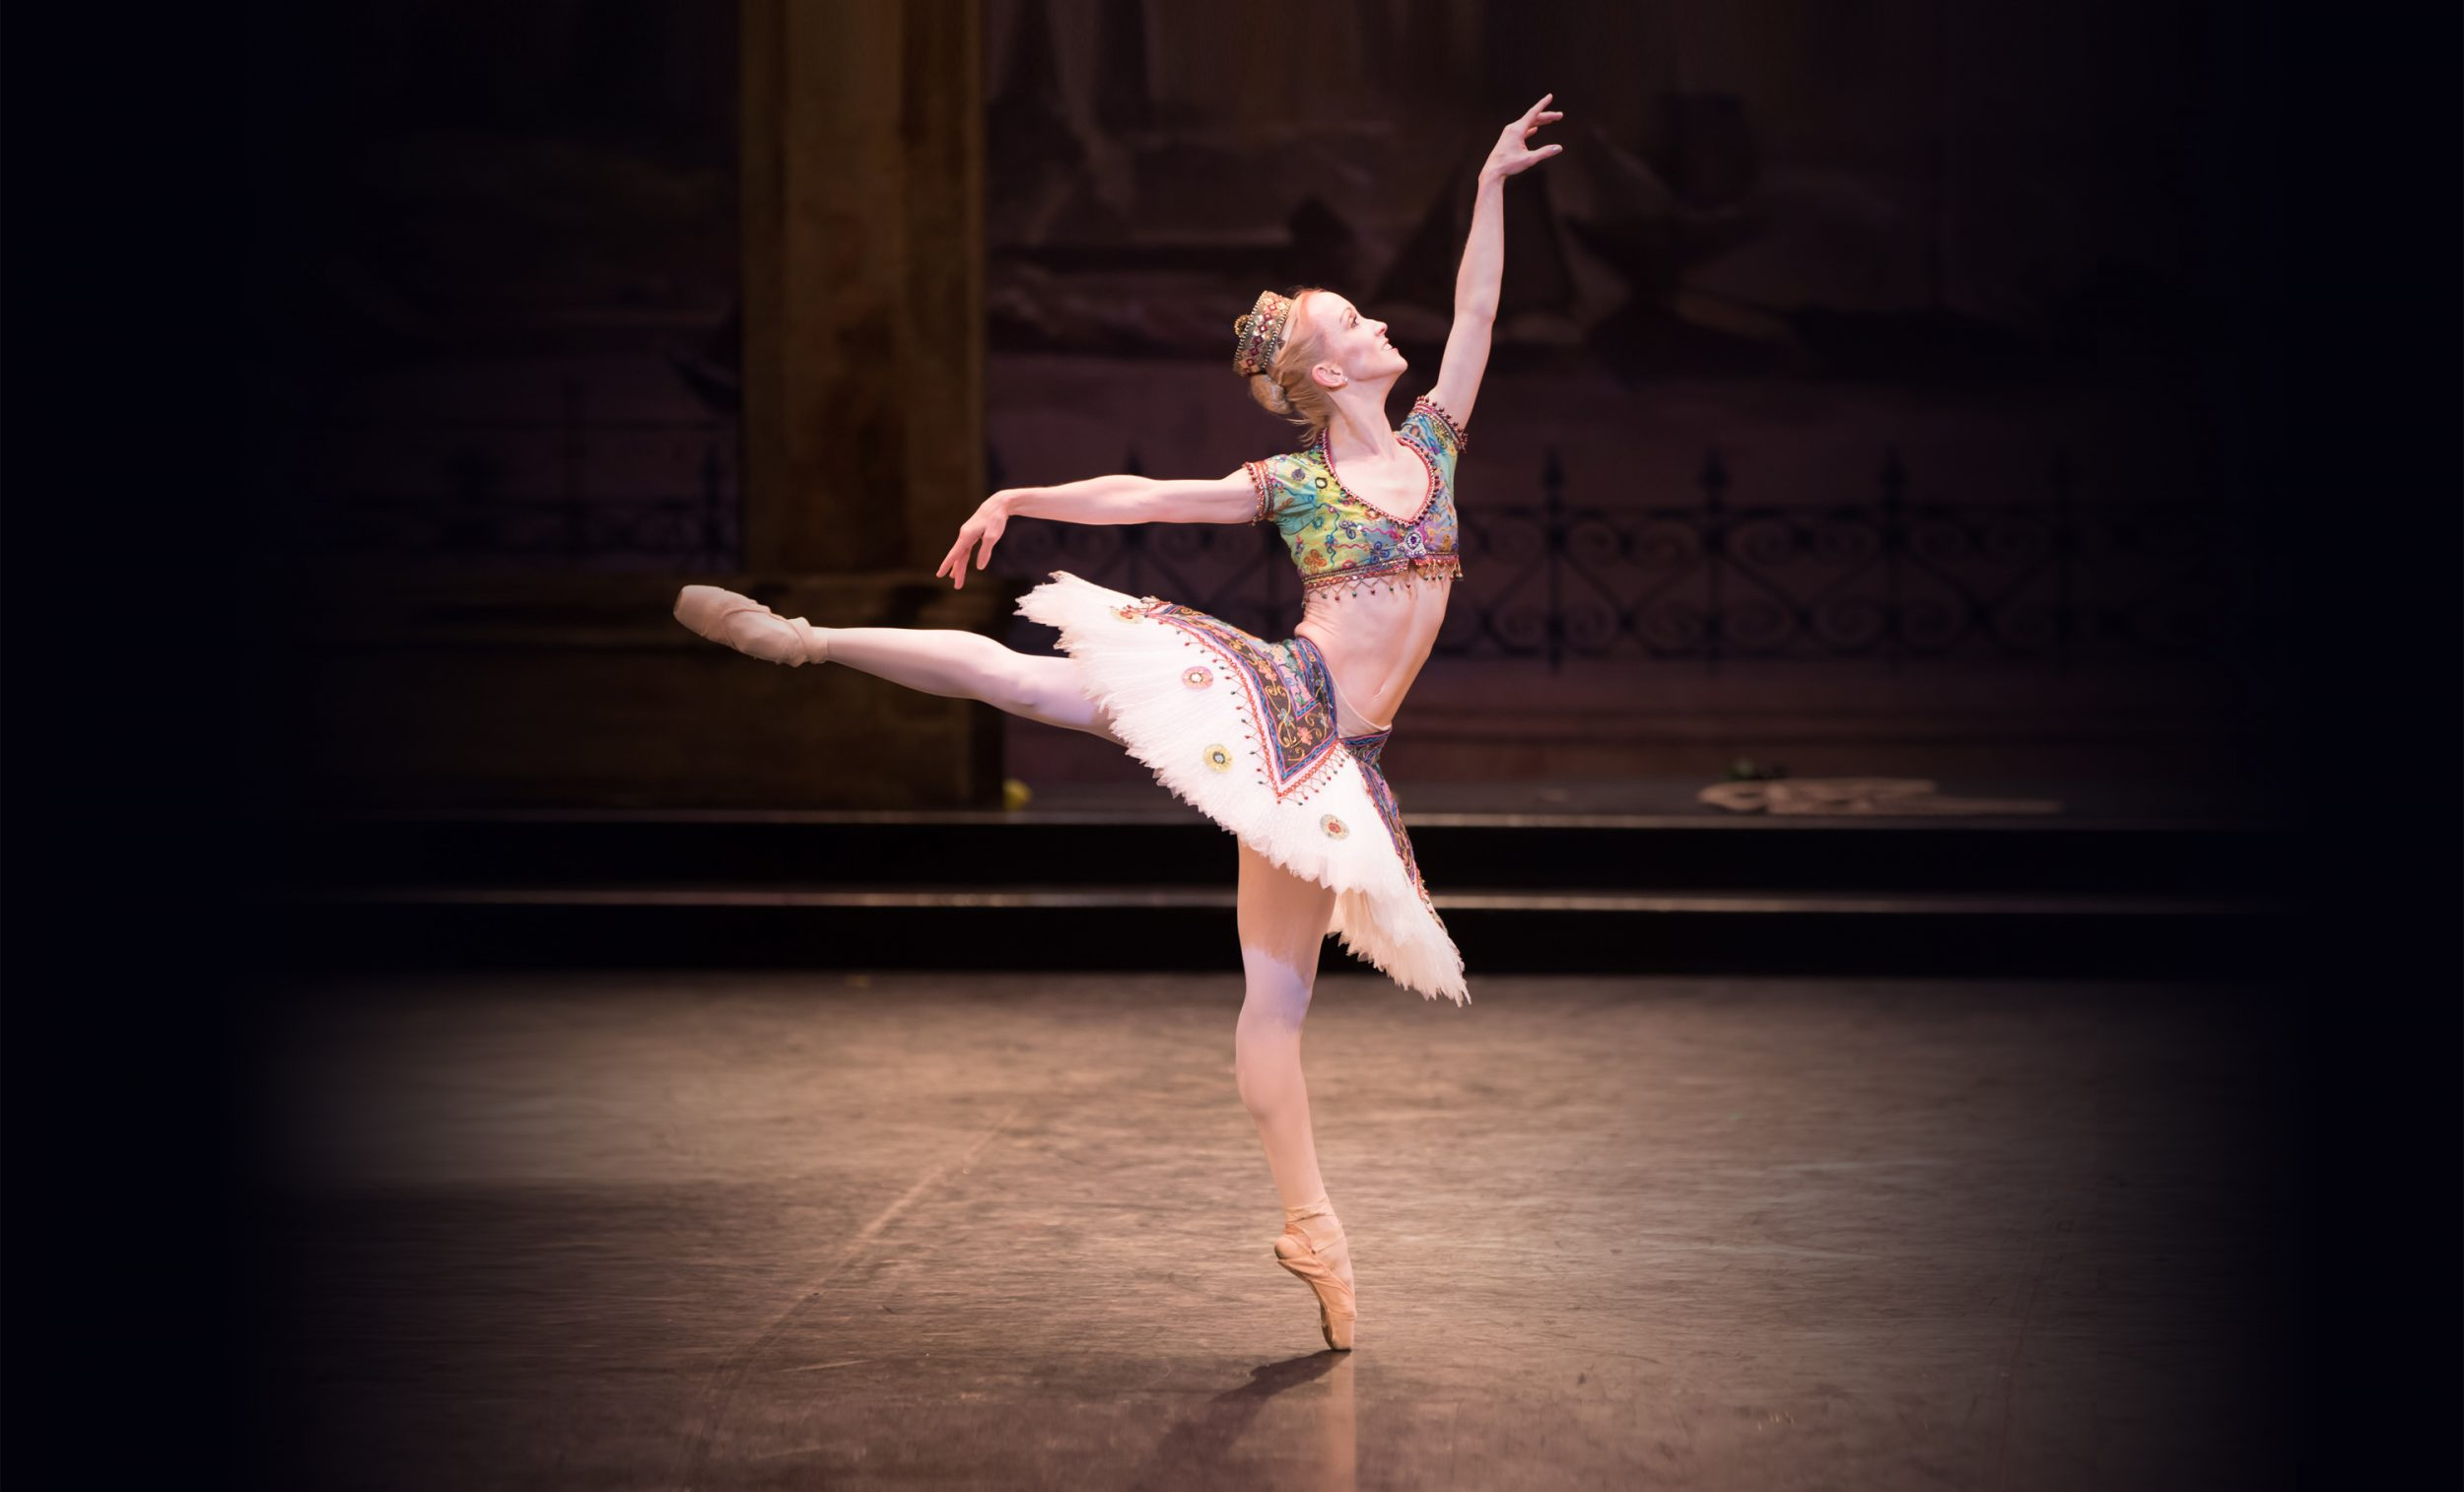 Tiffany-Hedman-in-English-National-Ballet's-Le-Corsaire-(C)-Photography-by-ASH